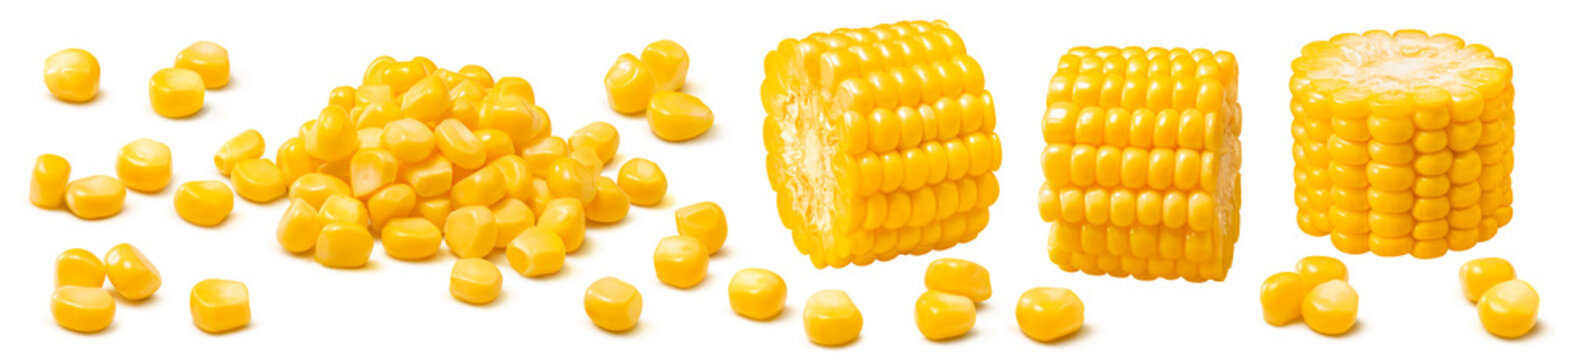 Corn set isolated on white background. Kernels and sliced cobs